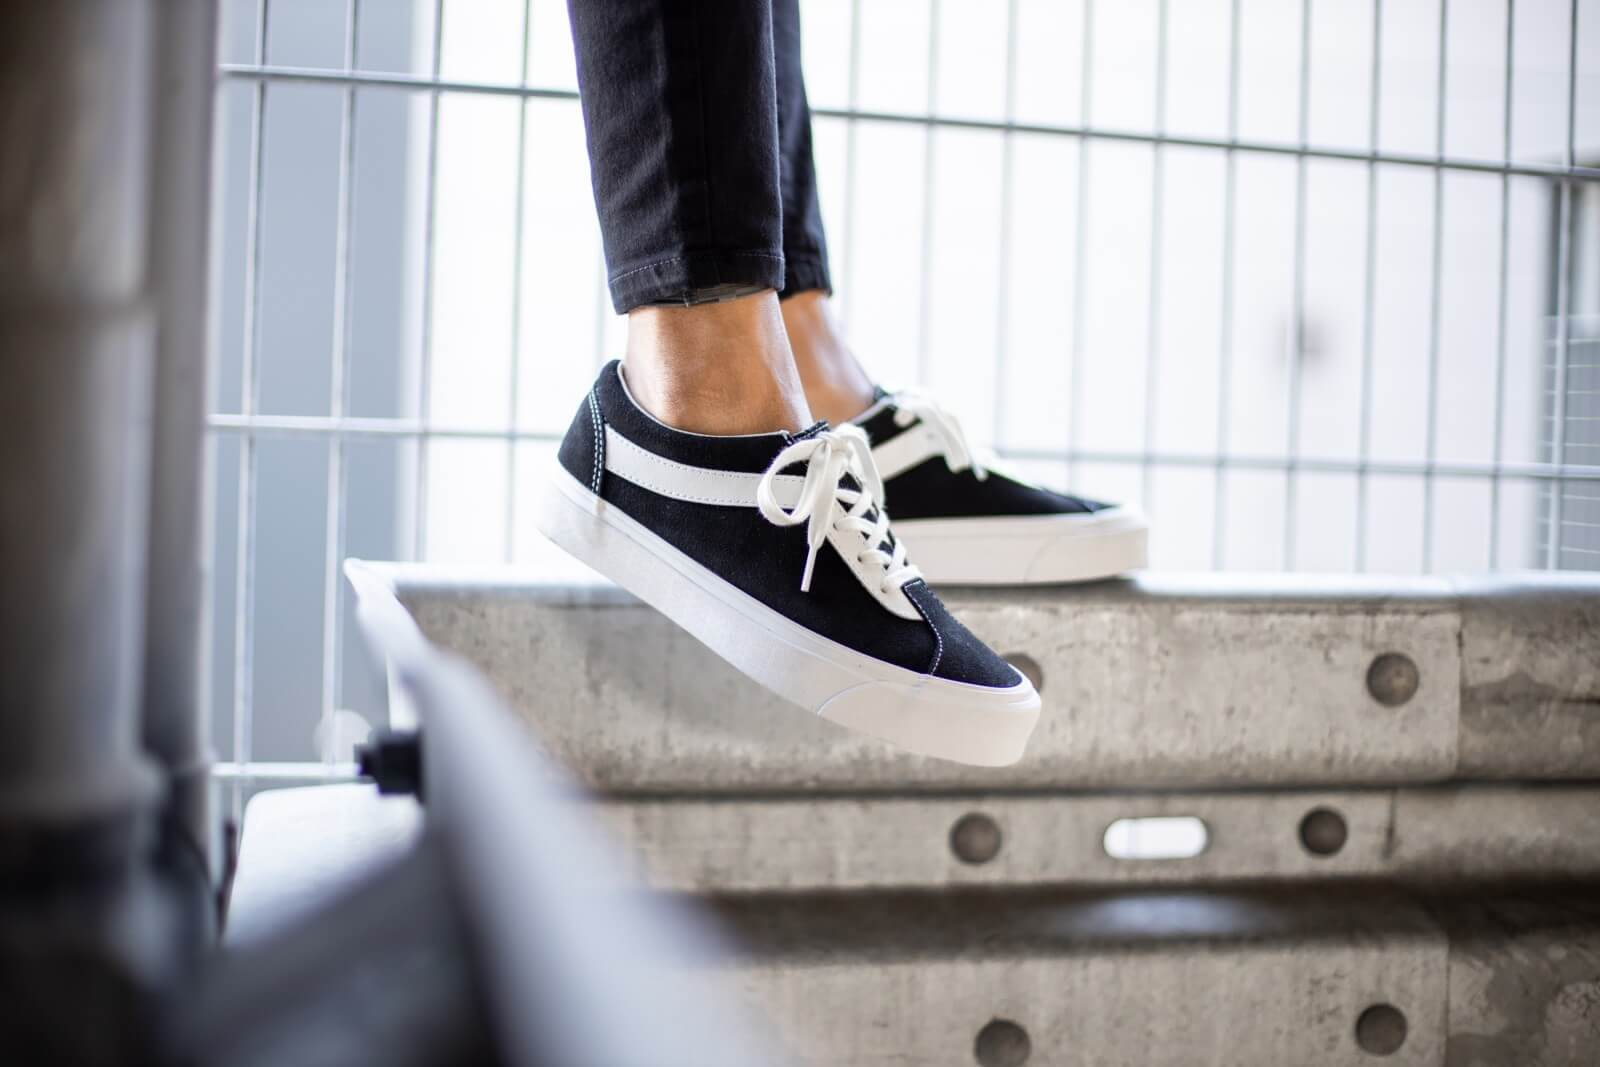 Vans Bold NI Staple BlackTrue White VN0A3WLPOS71